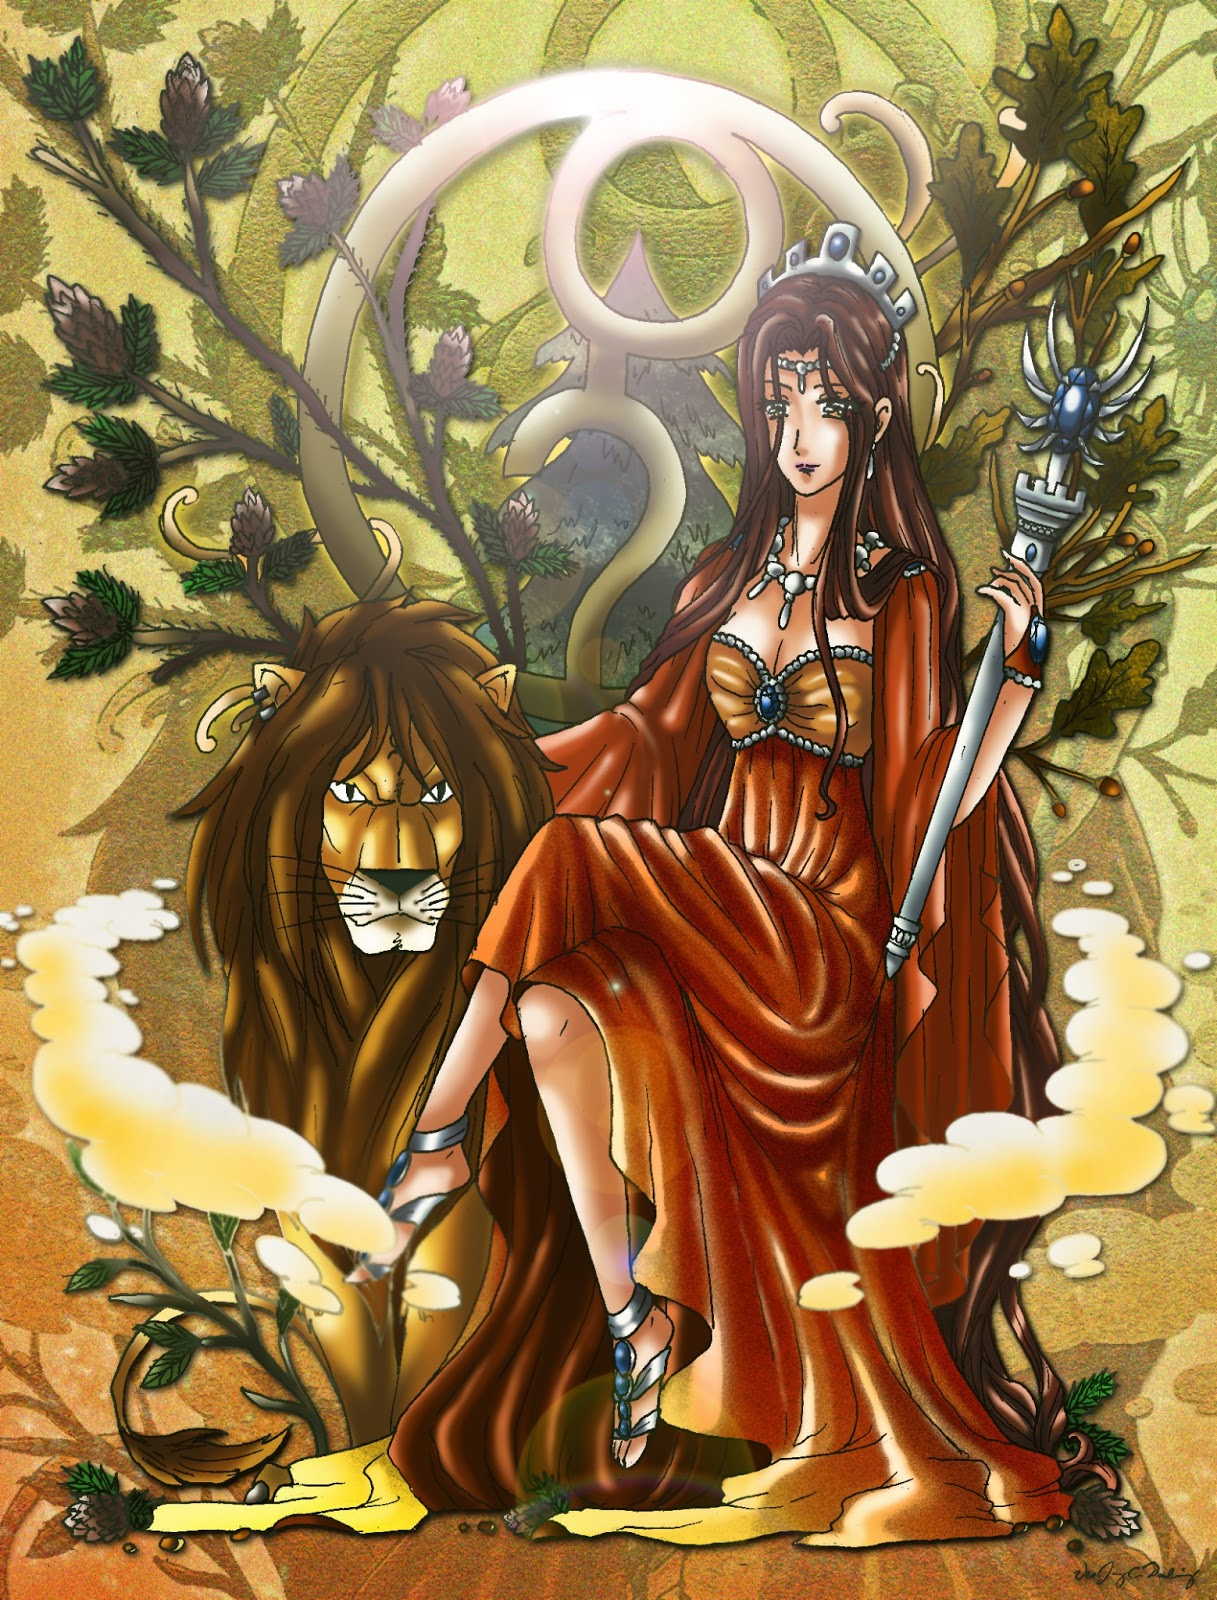 The olympian archives july 2013 Goddess of nature greek